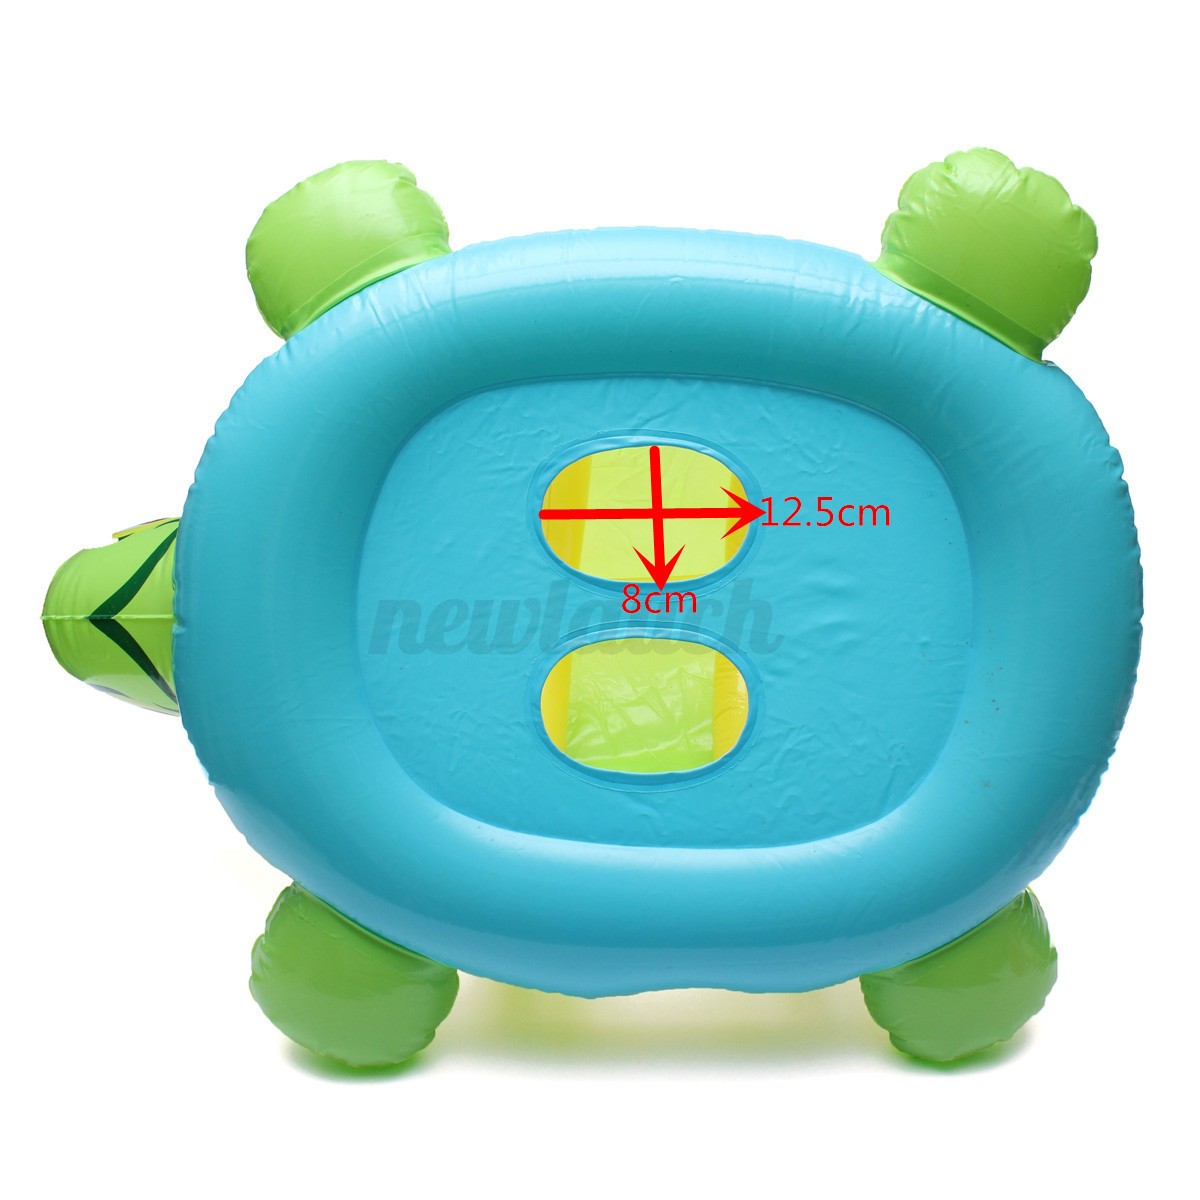 Kids Baby Inflatable Pool Tortoise Float Seat Boat Swim Ring Sunshade Canopy Ebay